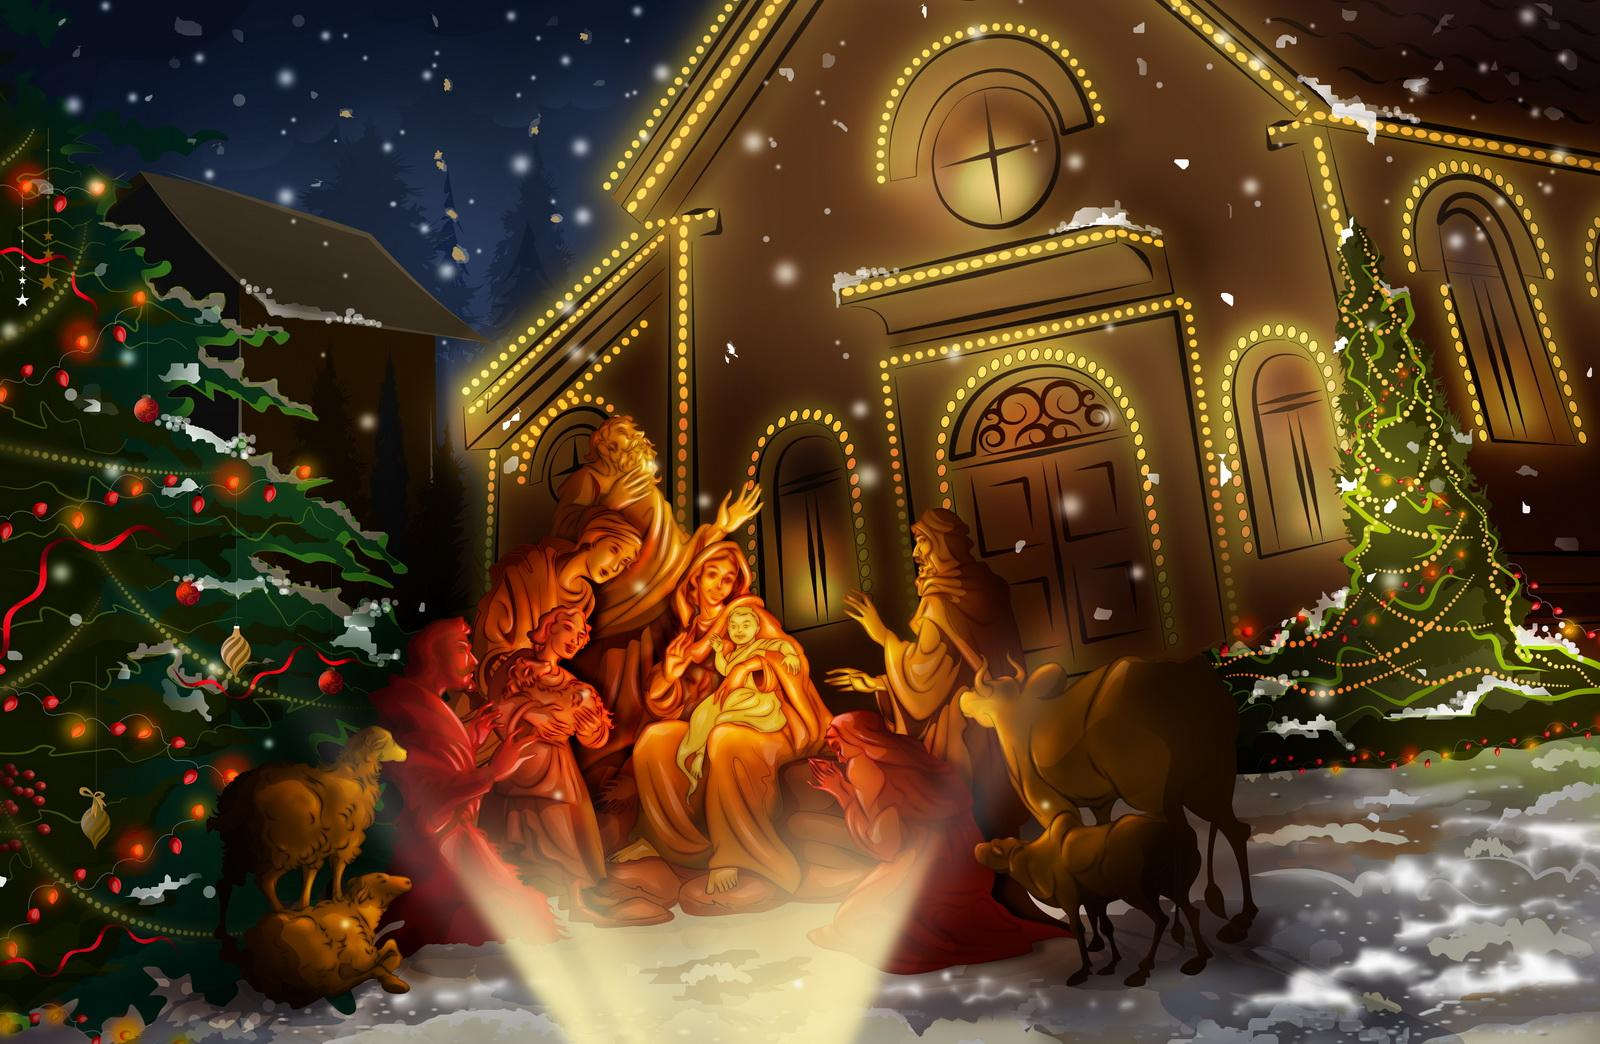 Nativity scene Wallpaper   Christian Wallpapers and Backgrounds 1600x1044